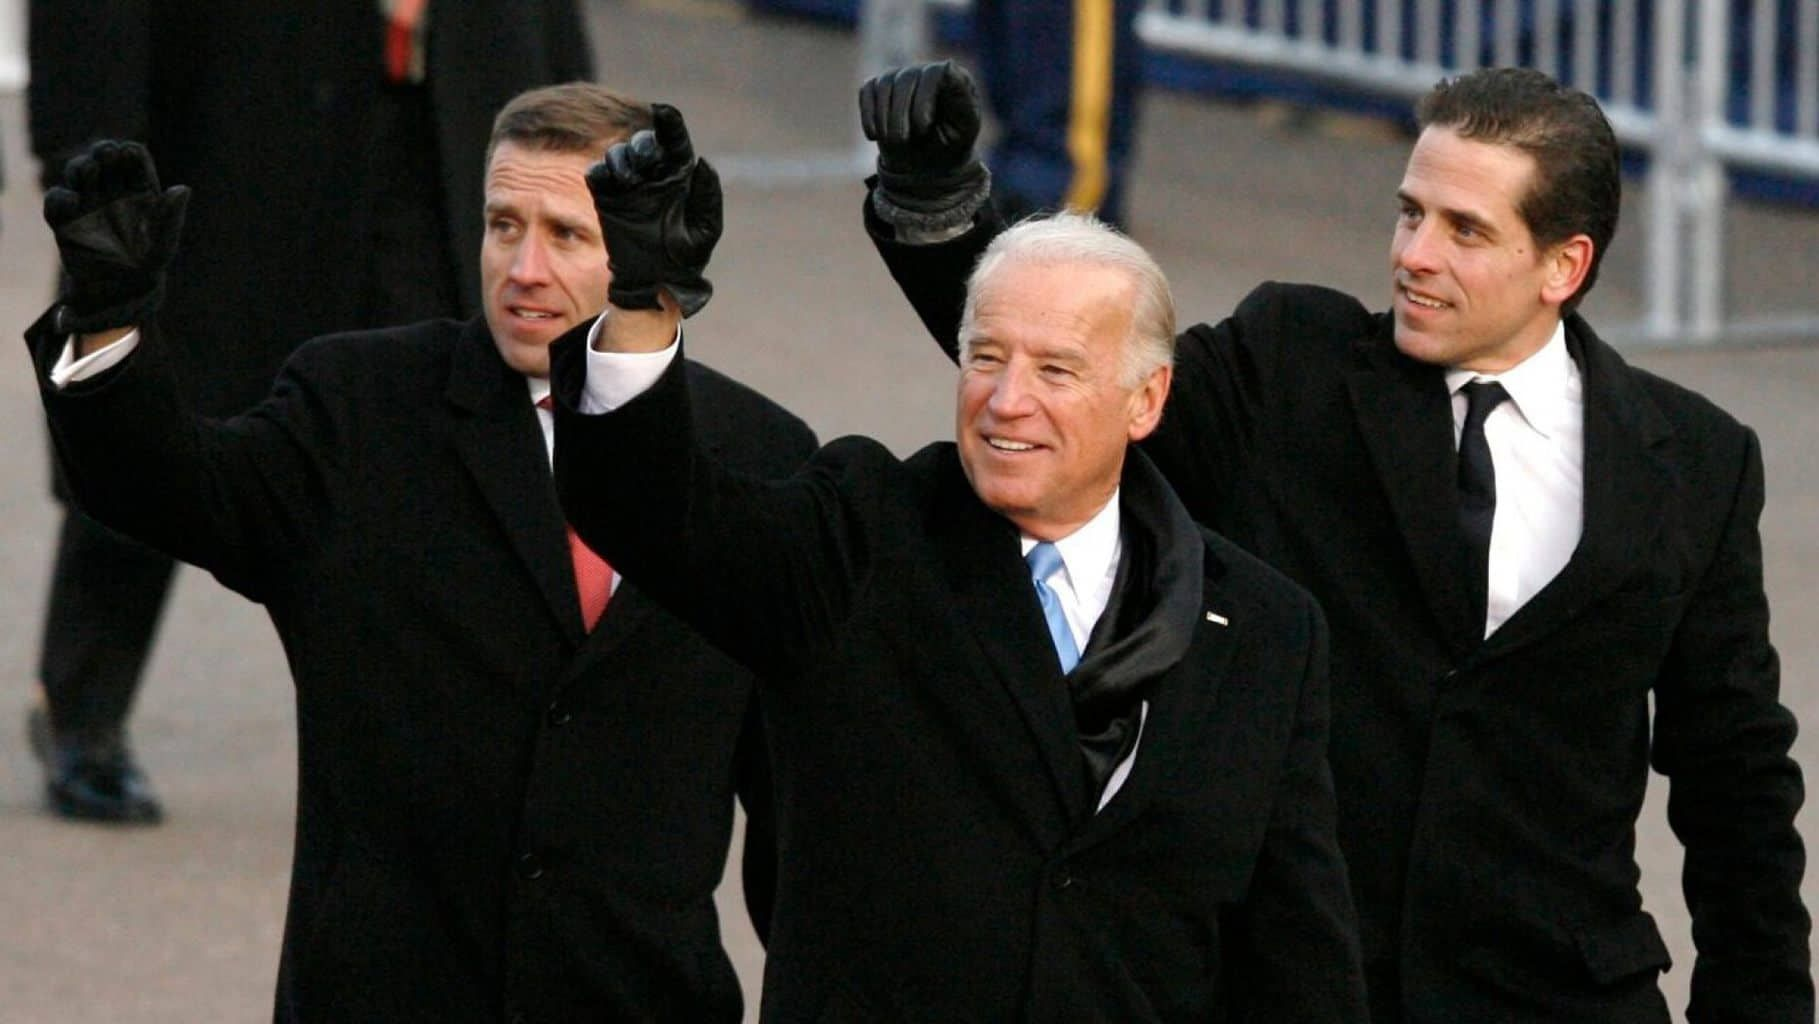 Joe Biden S Old Guy Machismo Is A Serious Flaw In 2020 Joe Biden Joe Biden Son Beau Biden